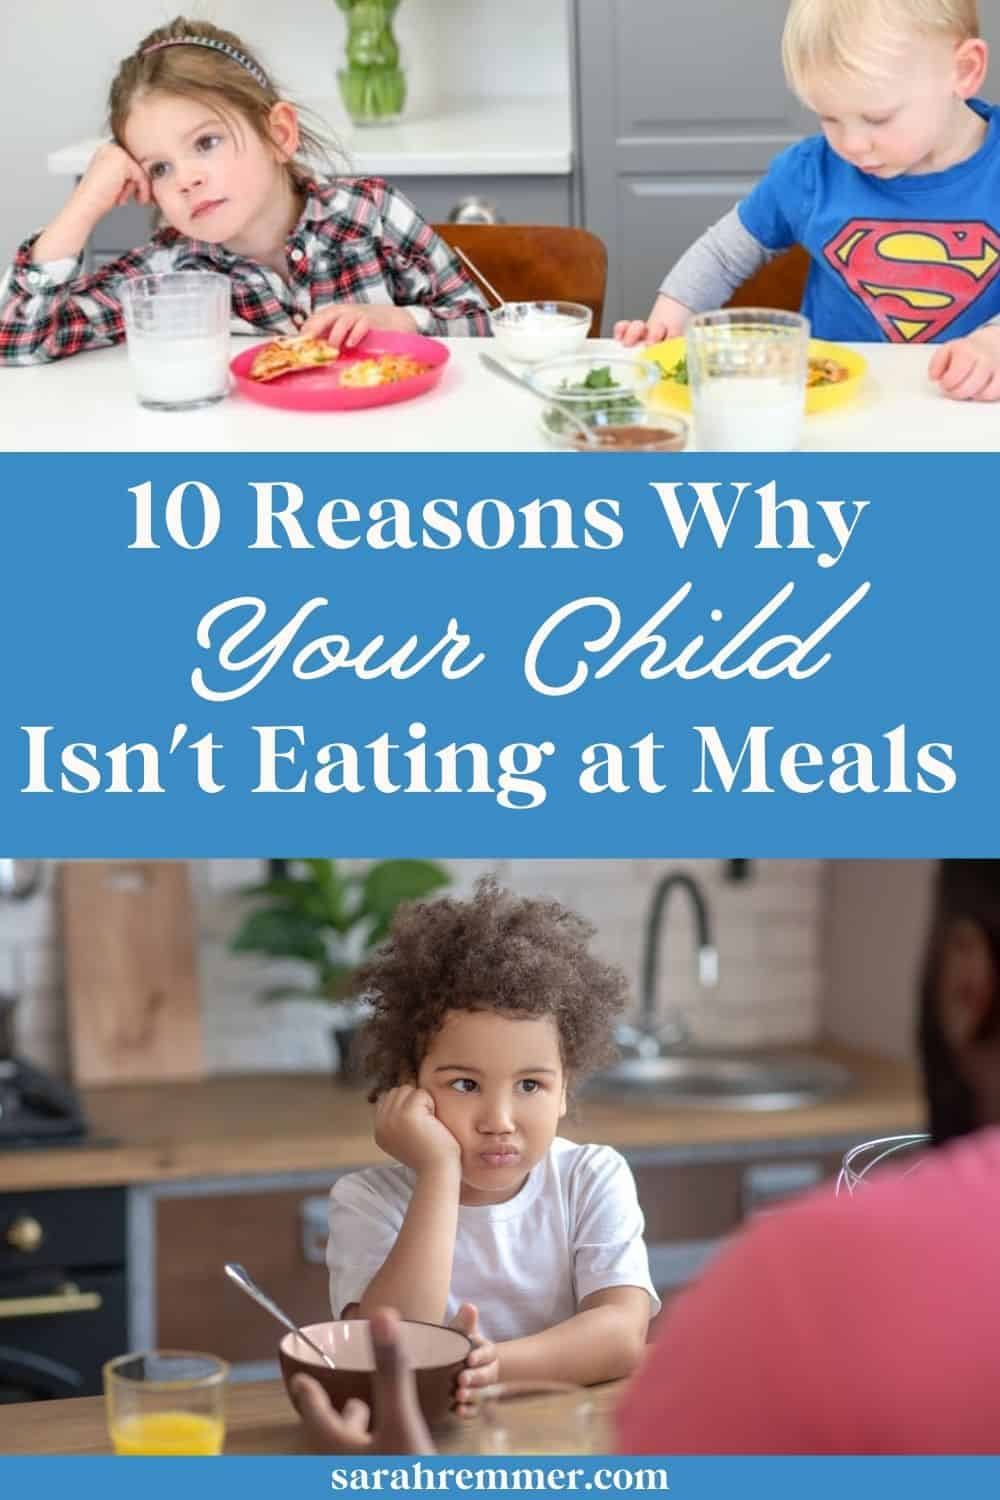 10 Reasons Why your Child Isn't Eating at Meals